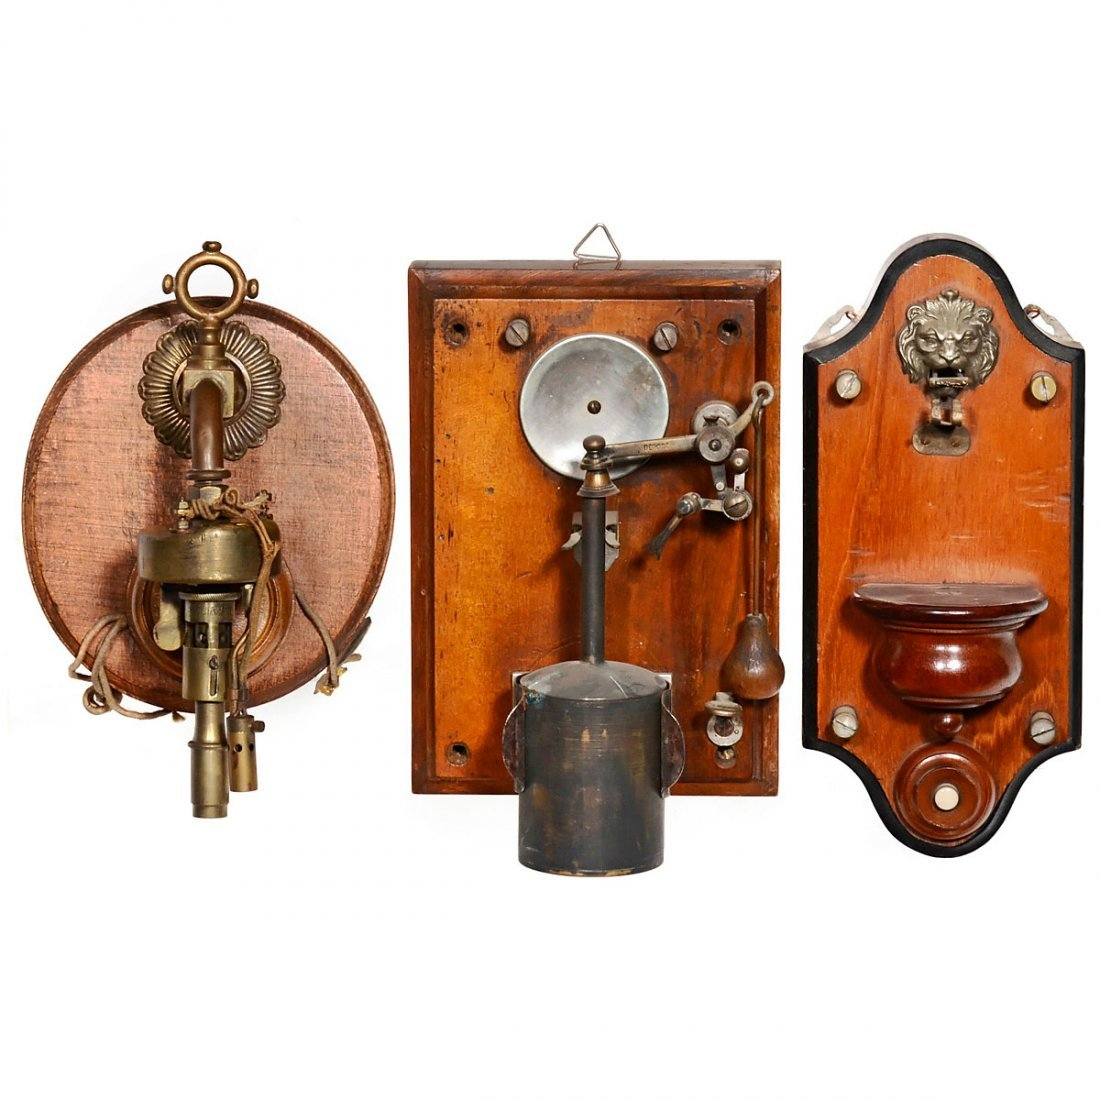 3 Early Electric Lighters, c. 1910